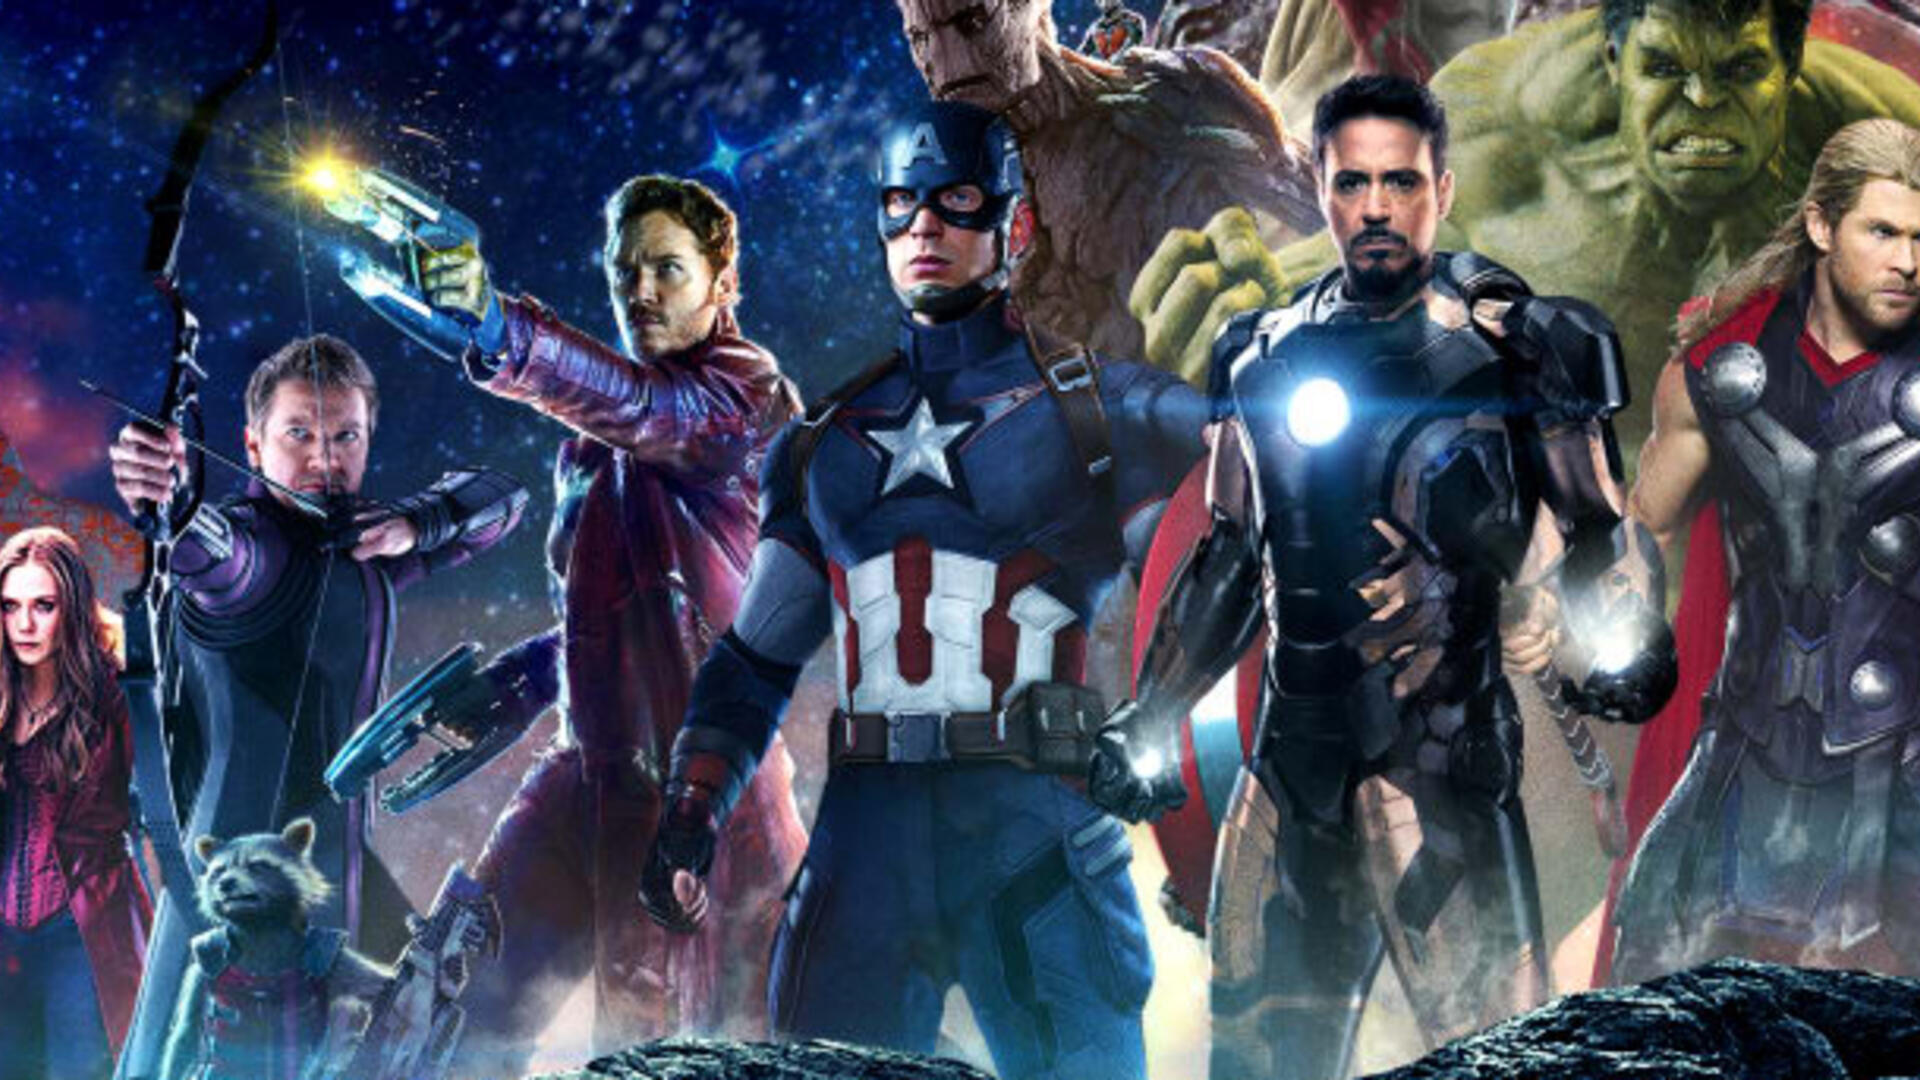 Could We Soon See the Videogame Equivalent of Avengers: Infinity War?